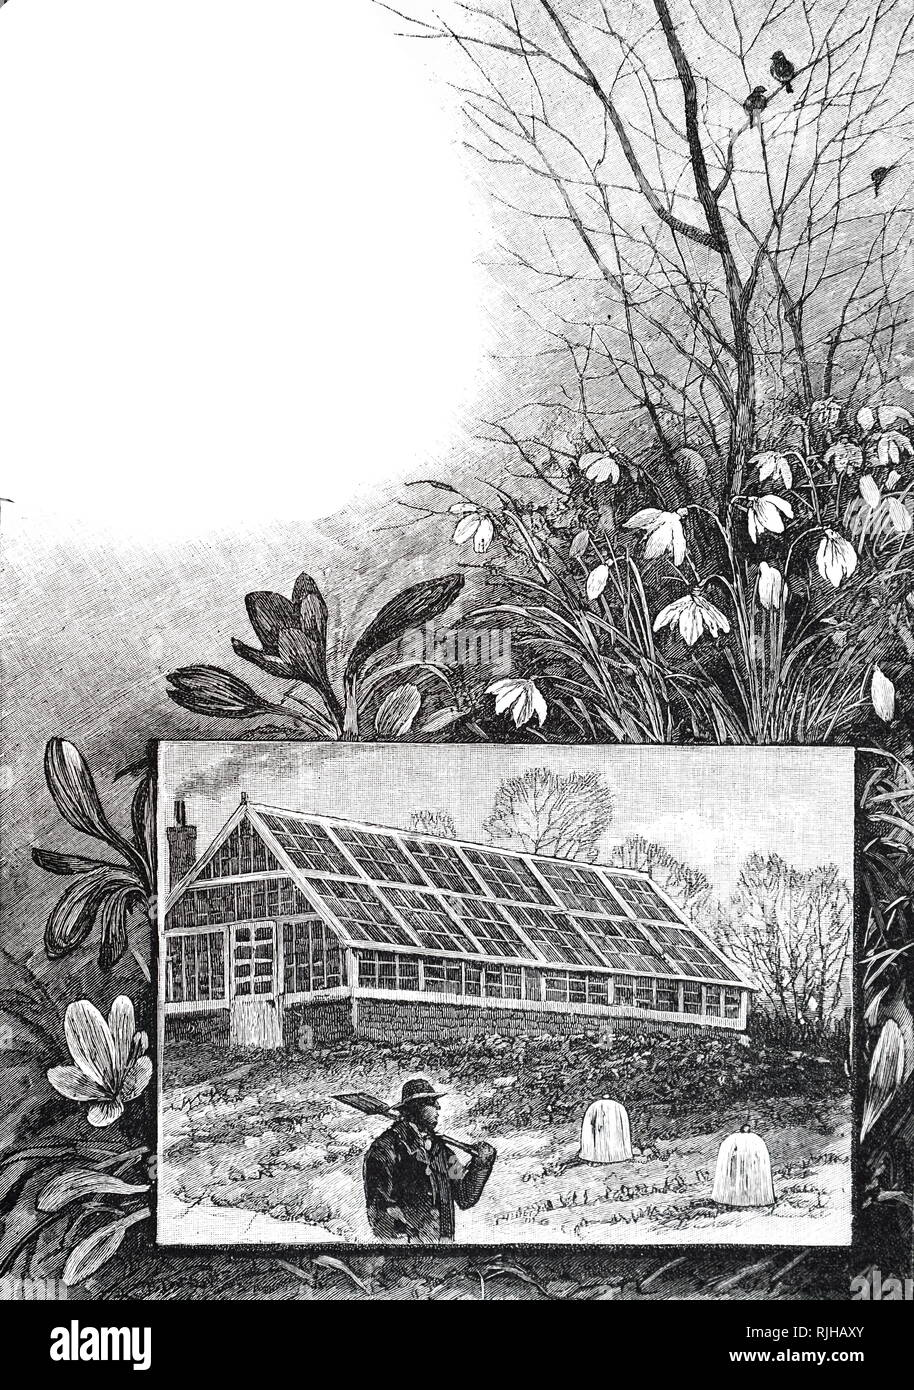 An engraving depicting a typical wood framed glass house and bell cloches in the foreground. Dated 19th century - Stock Image